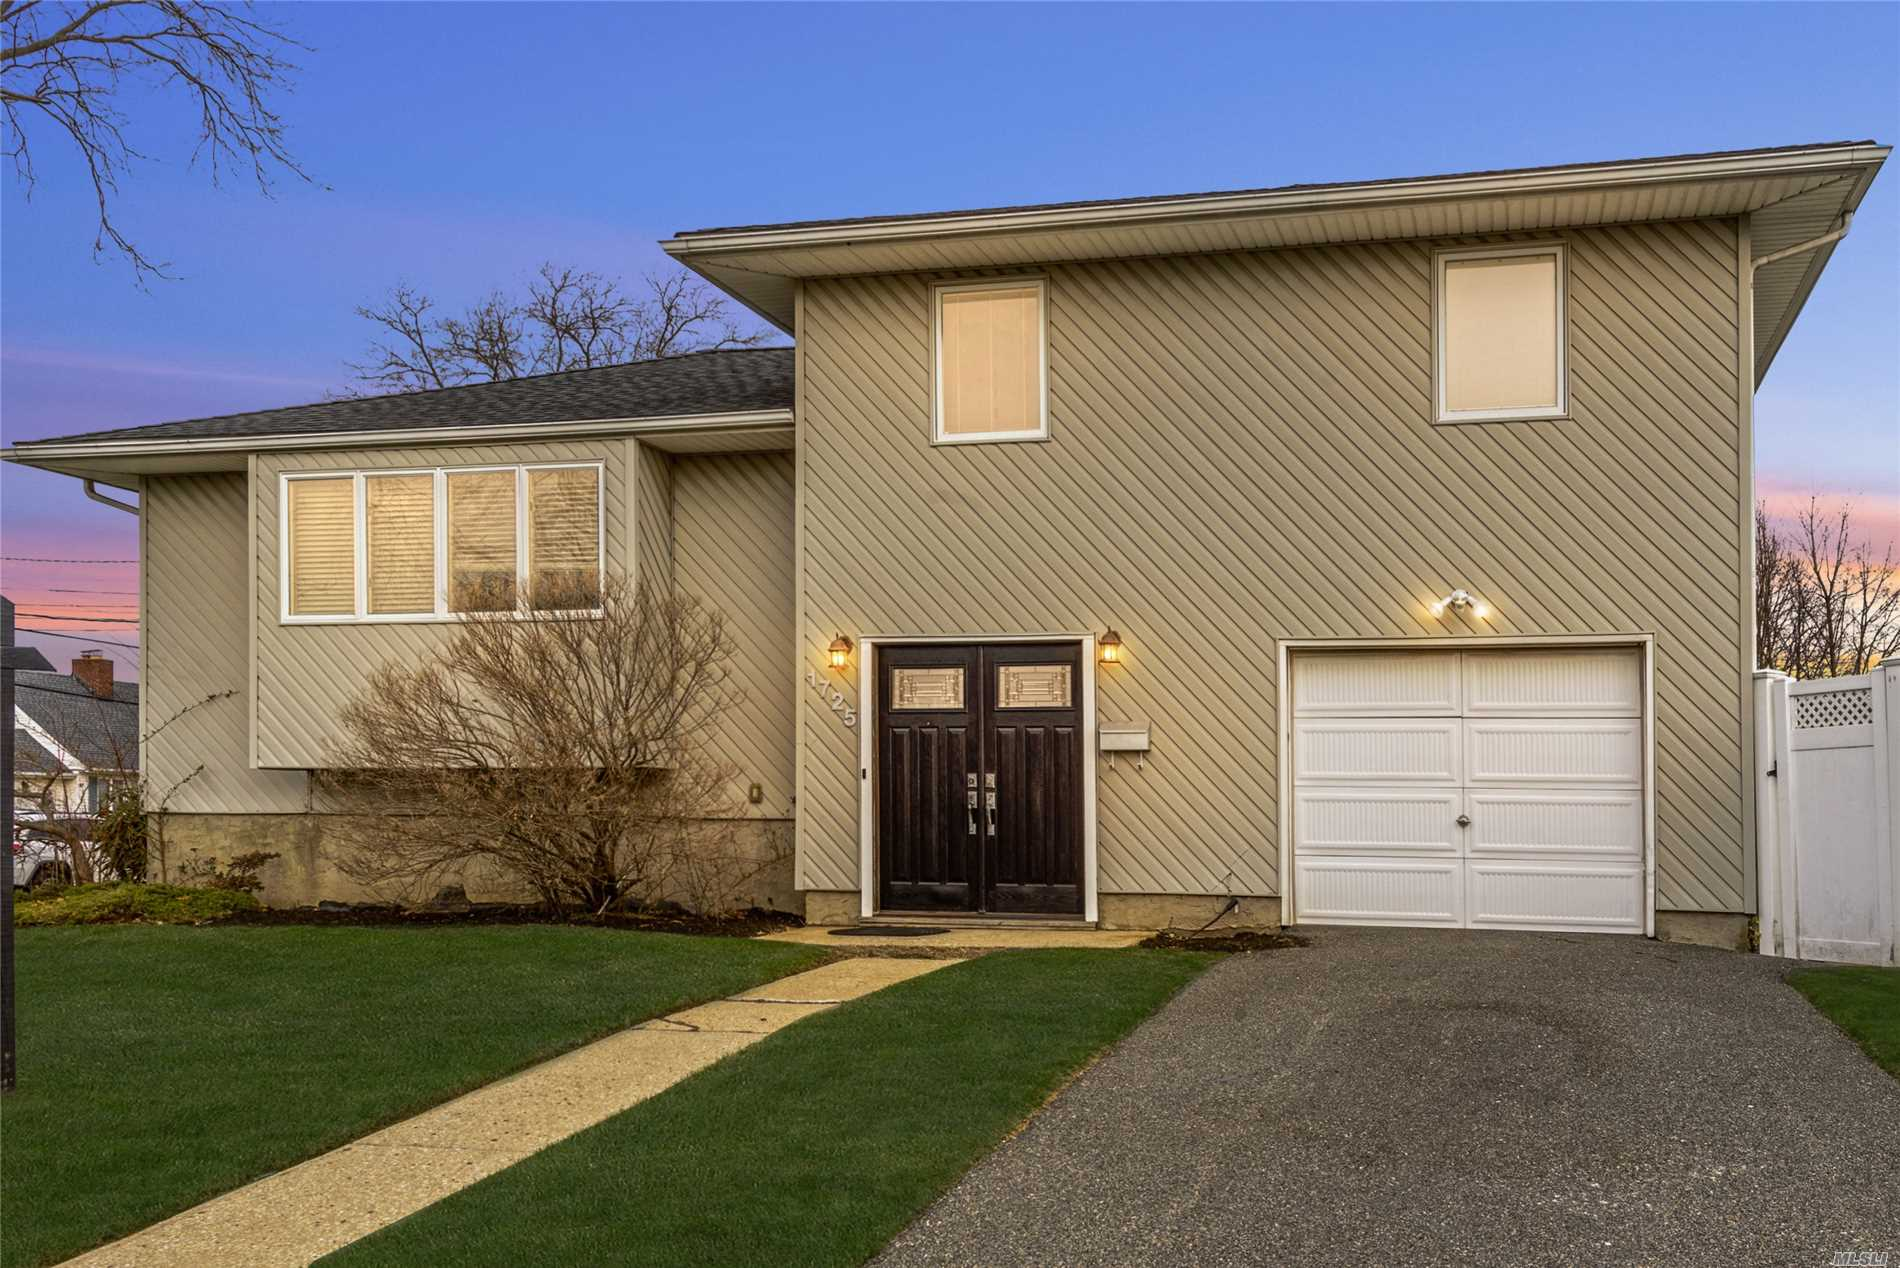 Must see updated 3 bedroom, 2 bath split. Open concept Kitchen with granite and stainless appliances, Living Room, Dining Room, Den, Updated Baths, Finished Basement. Priced to sell!